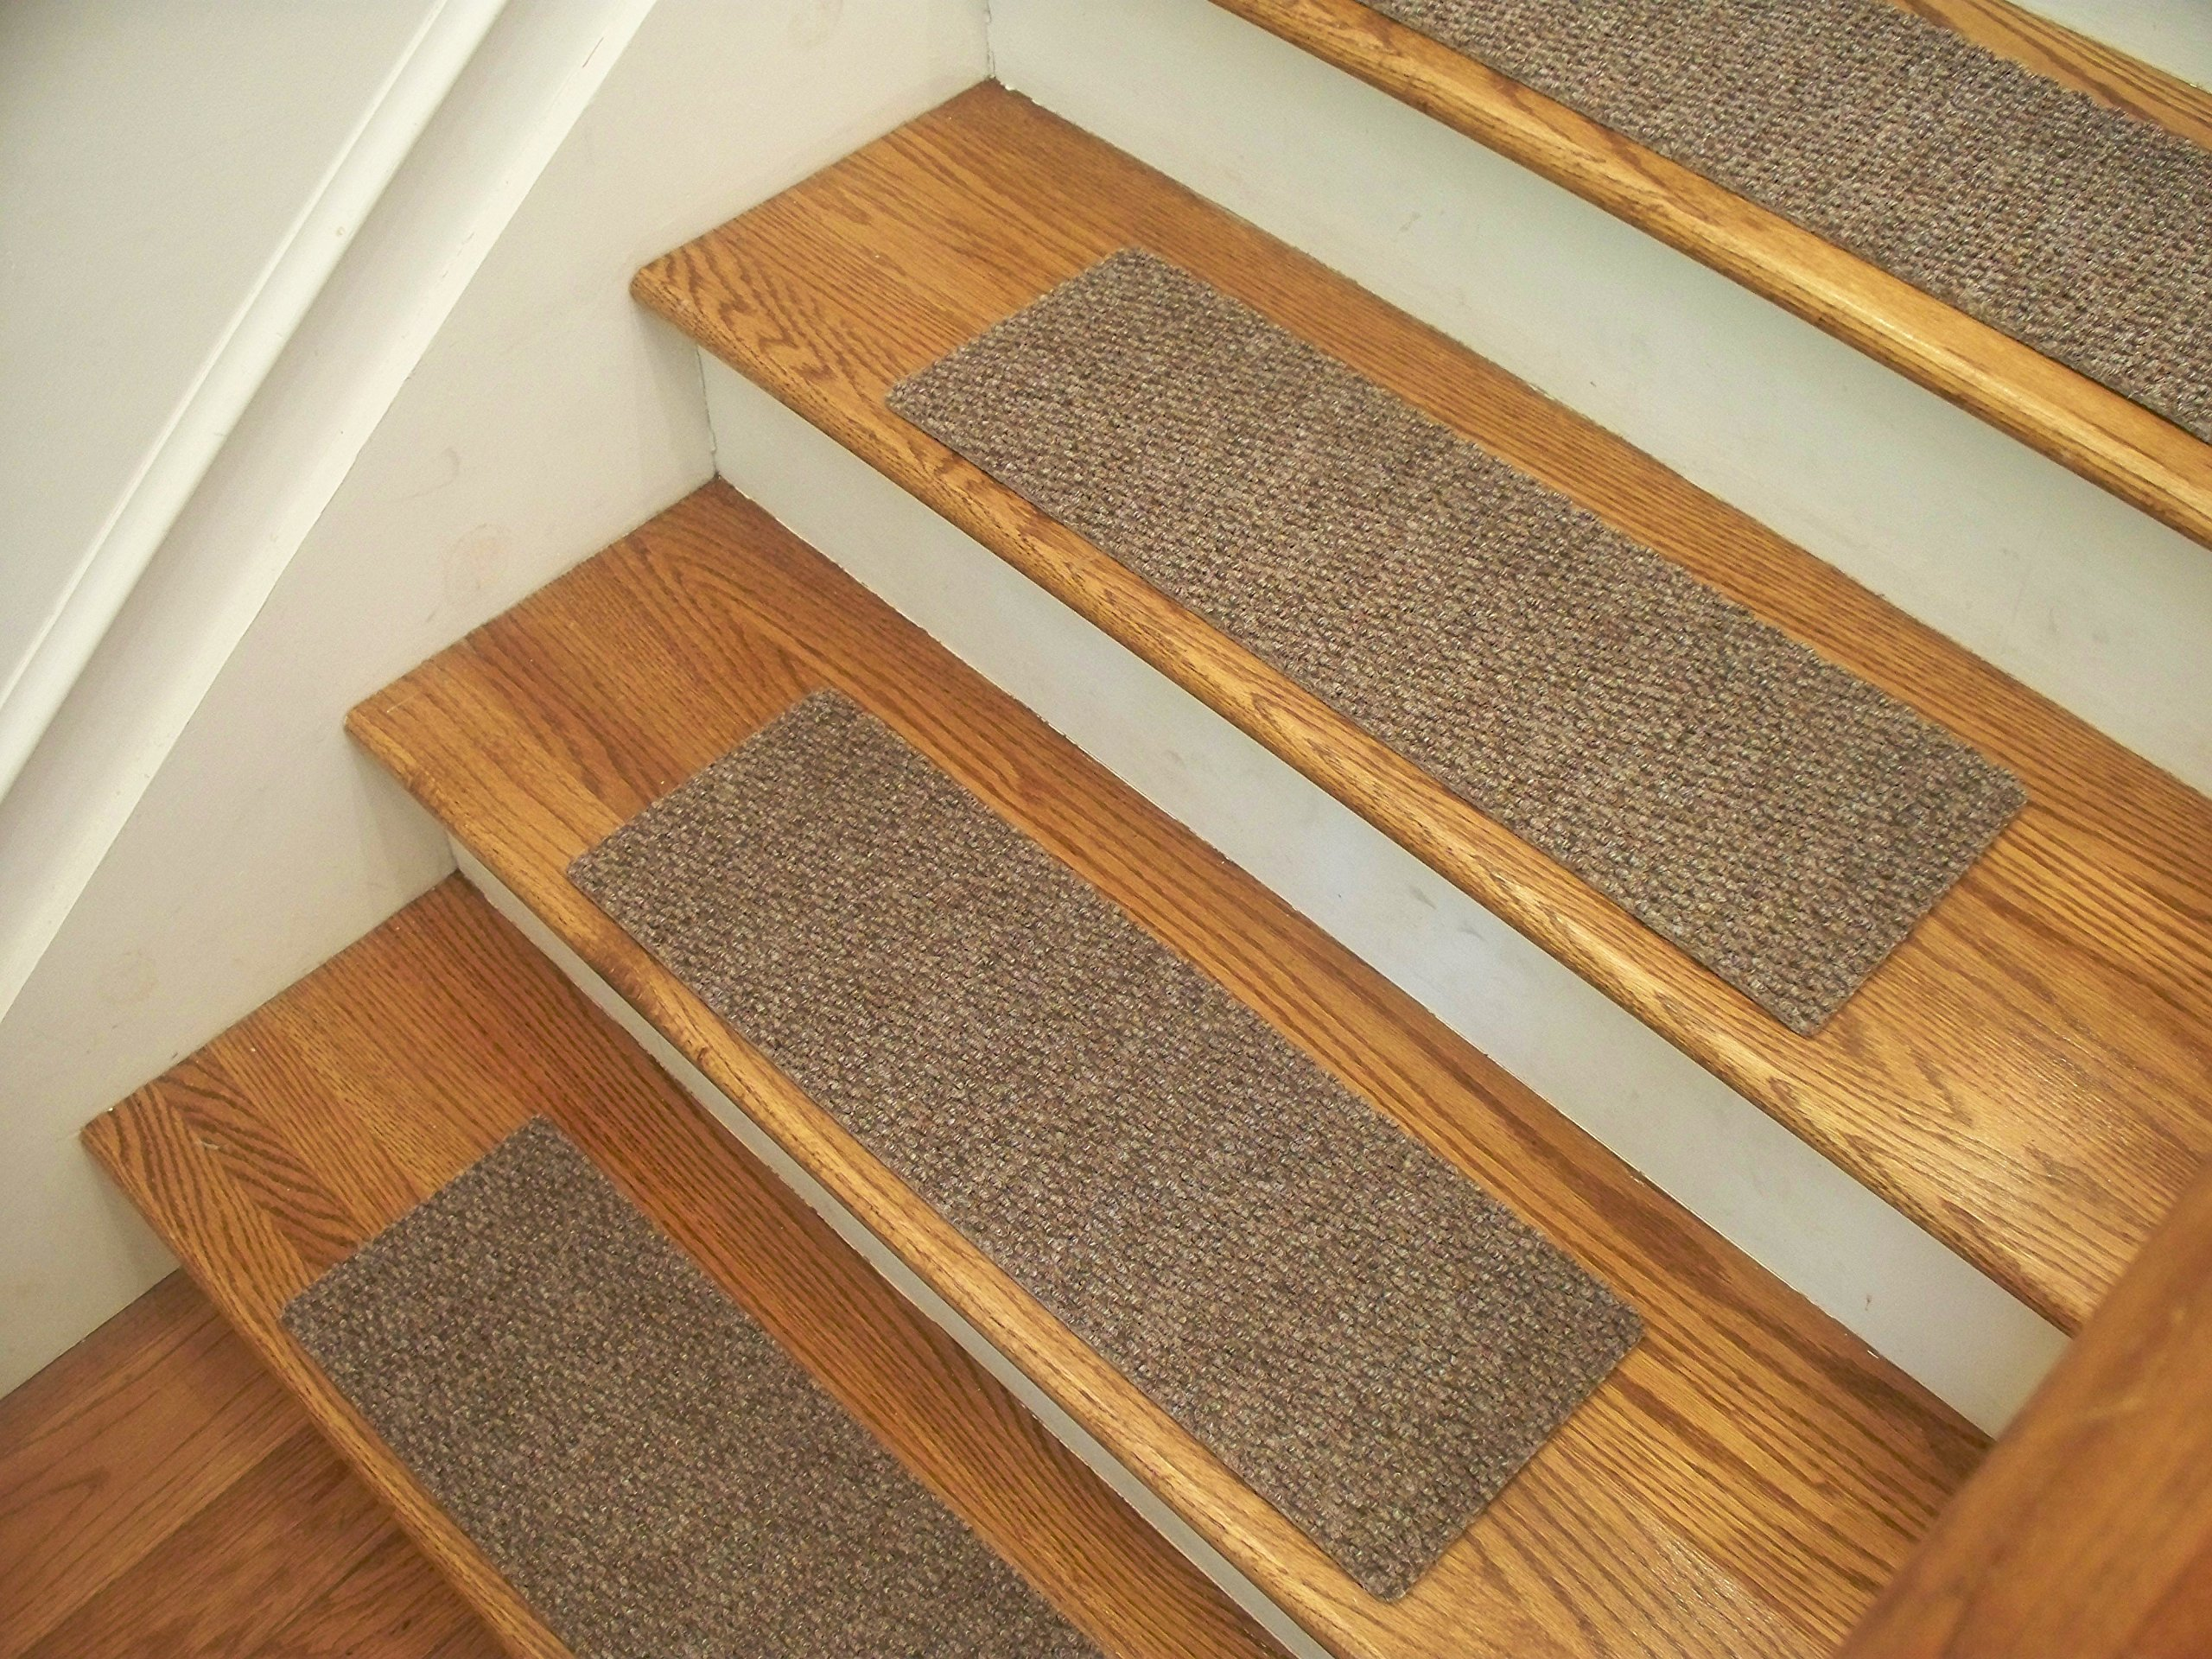 """Essential Carpet Stair Treads - Style: Berber - Color: Beige Gray - Size: 24"""" x 8"""" - Set of 15"""